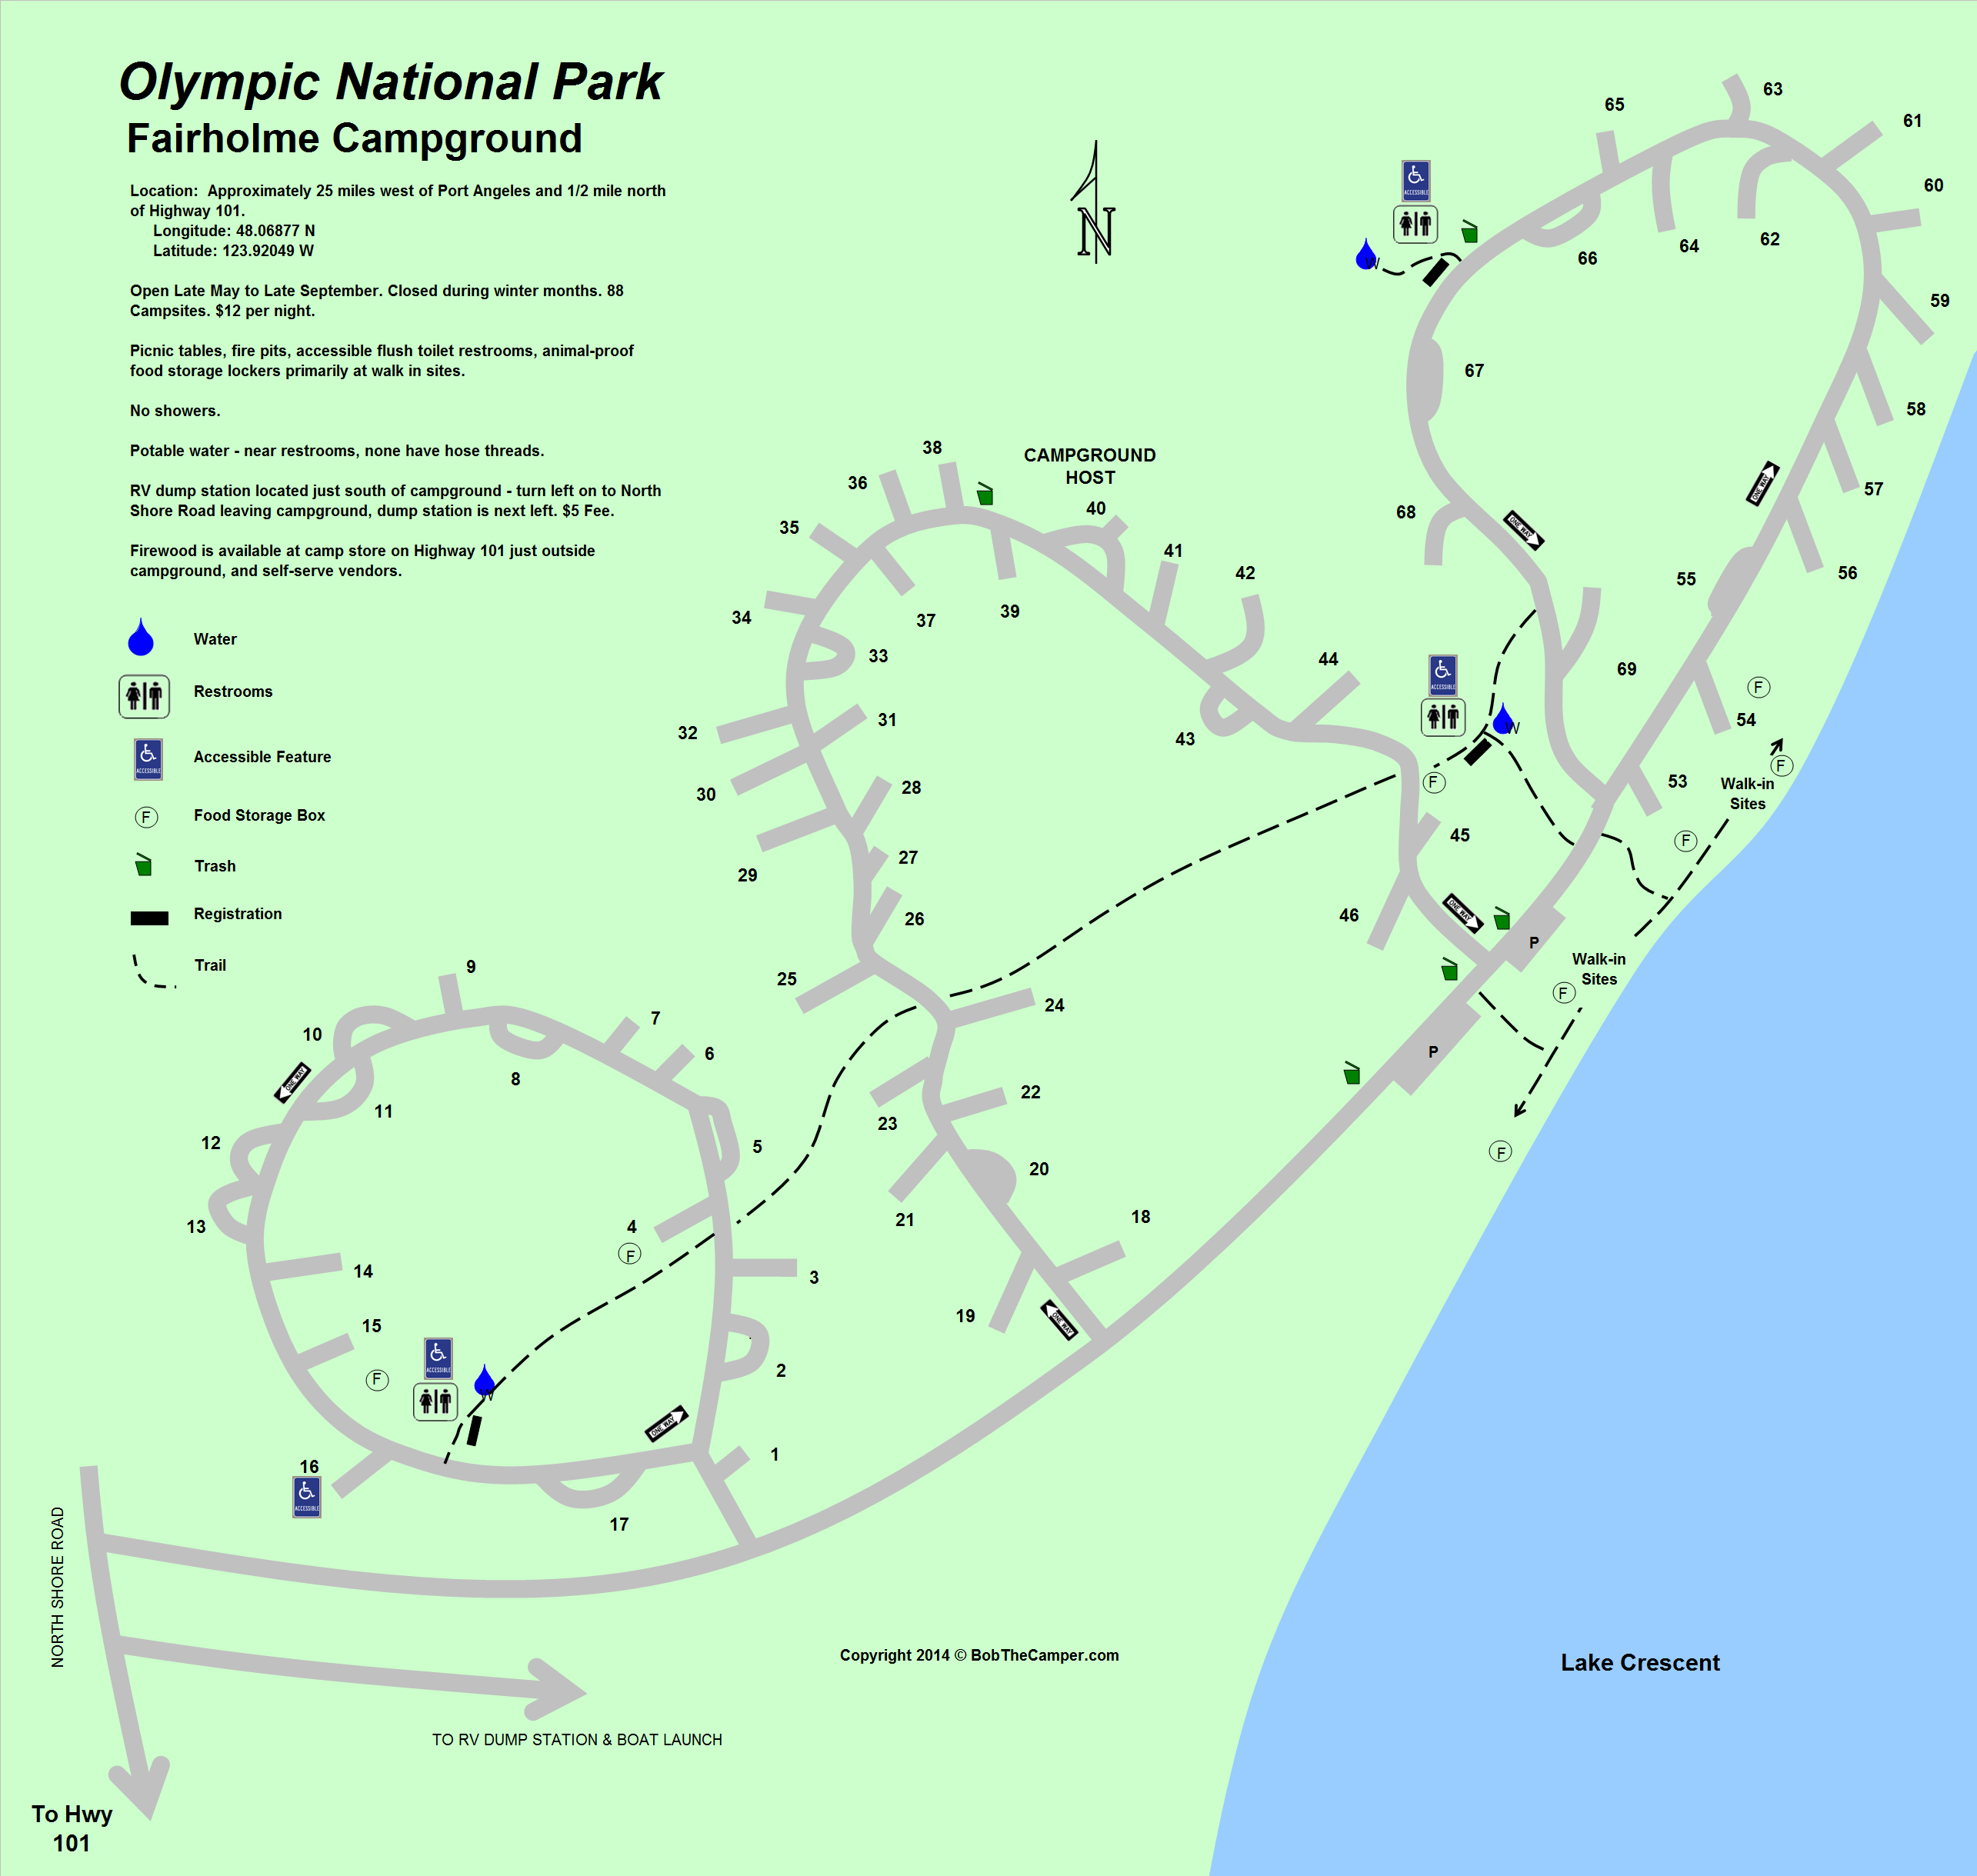 Fairholme Campground Map Olympic National Park